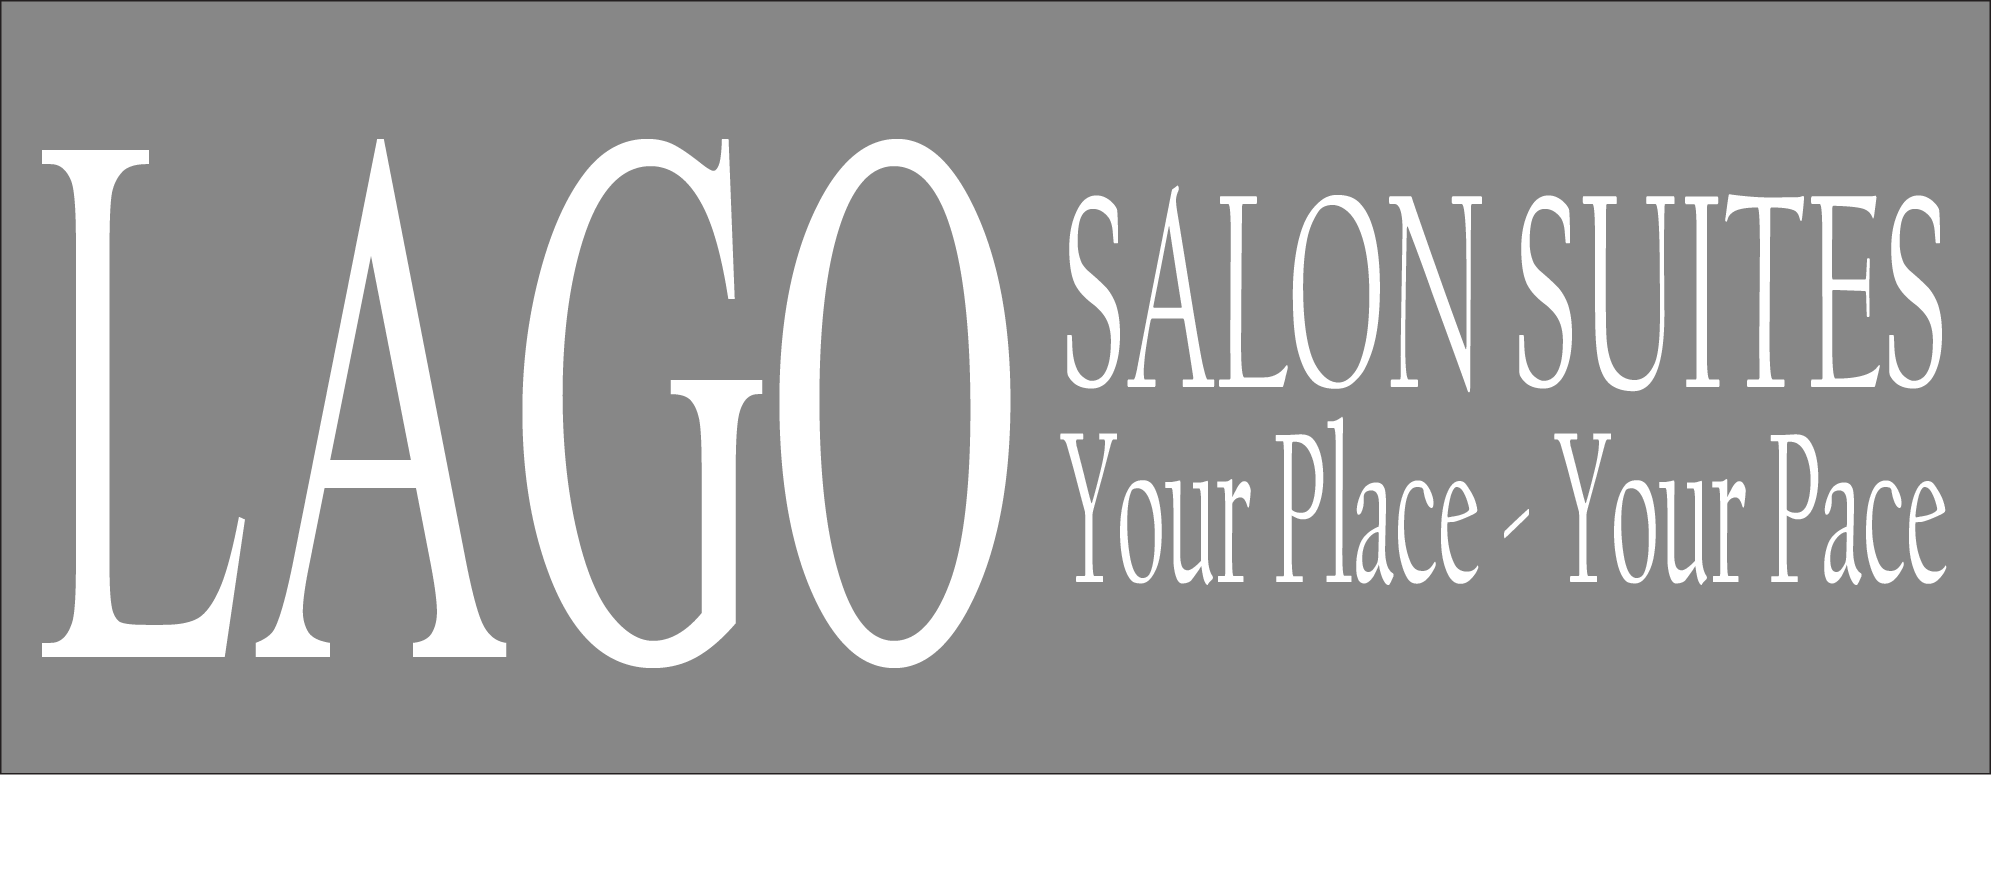 Lago Salon Suites